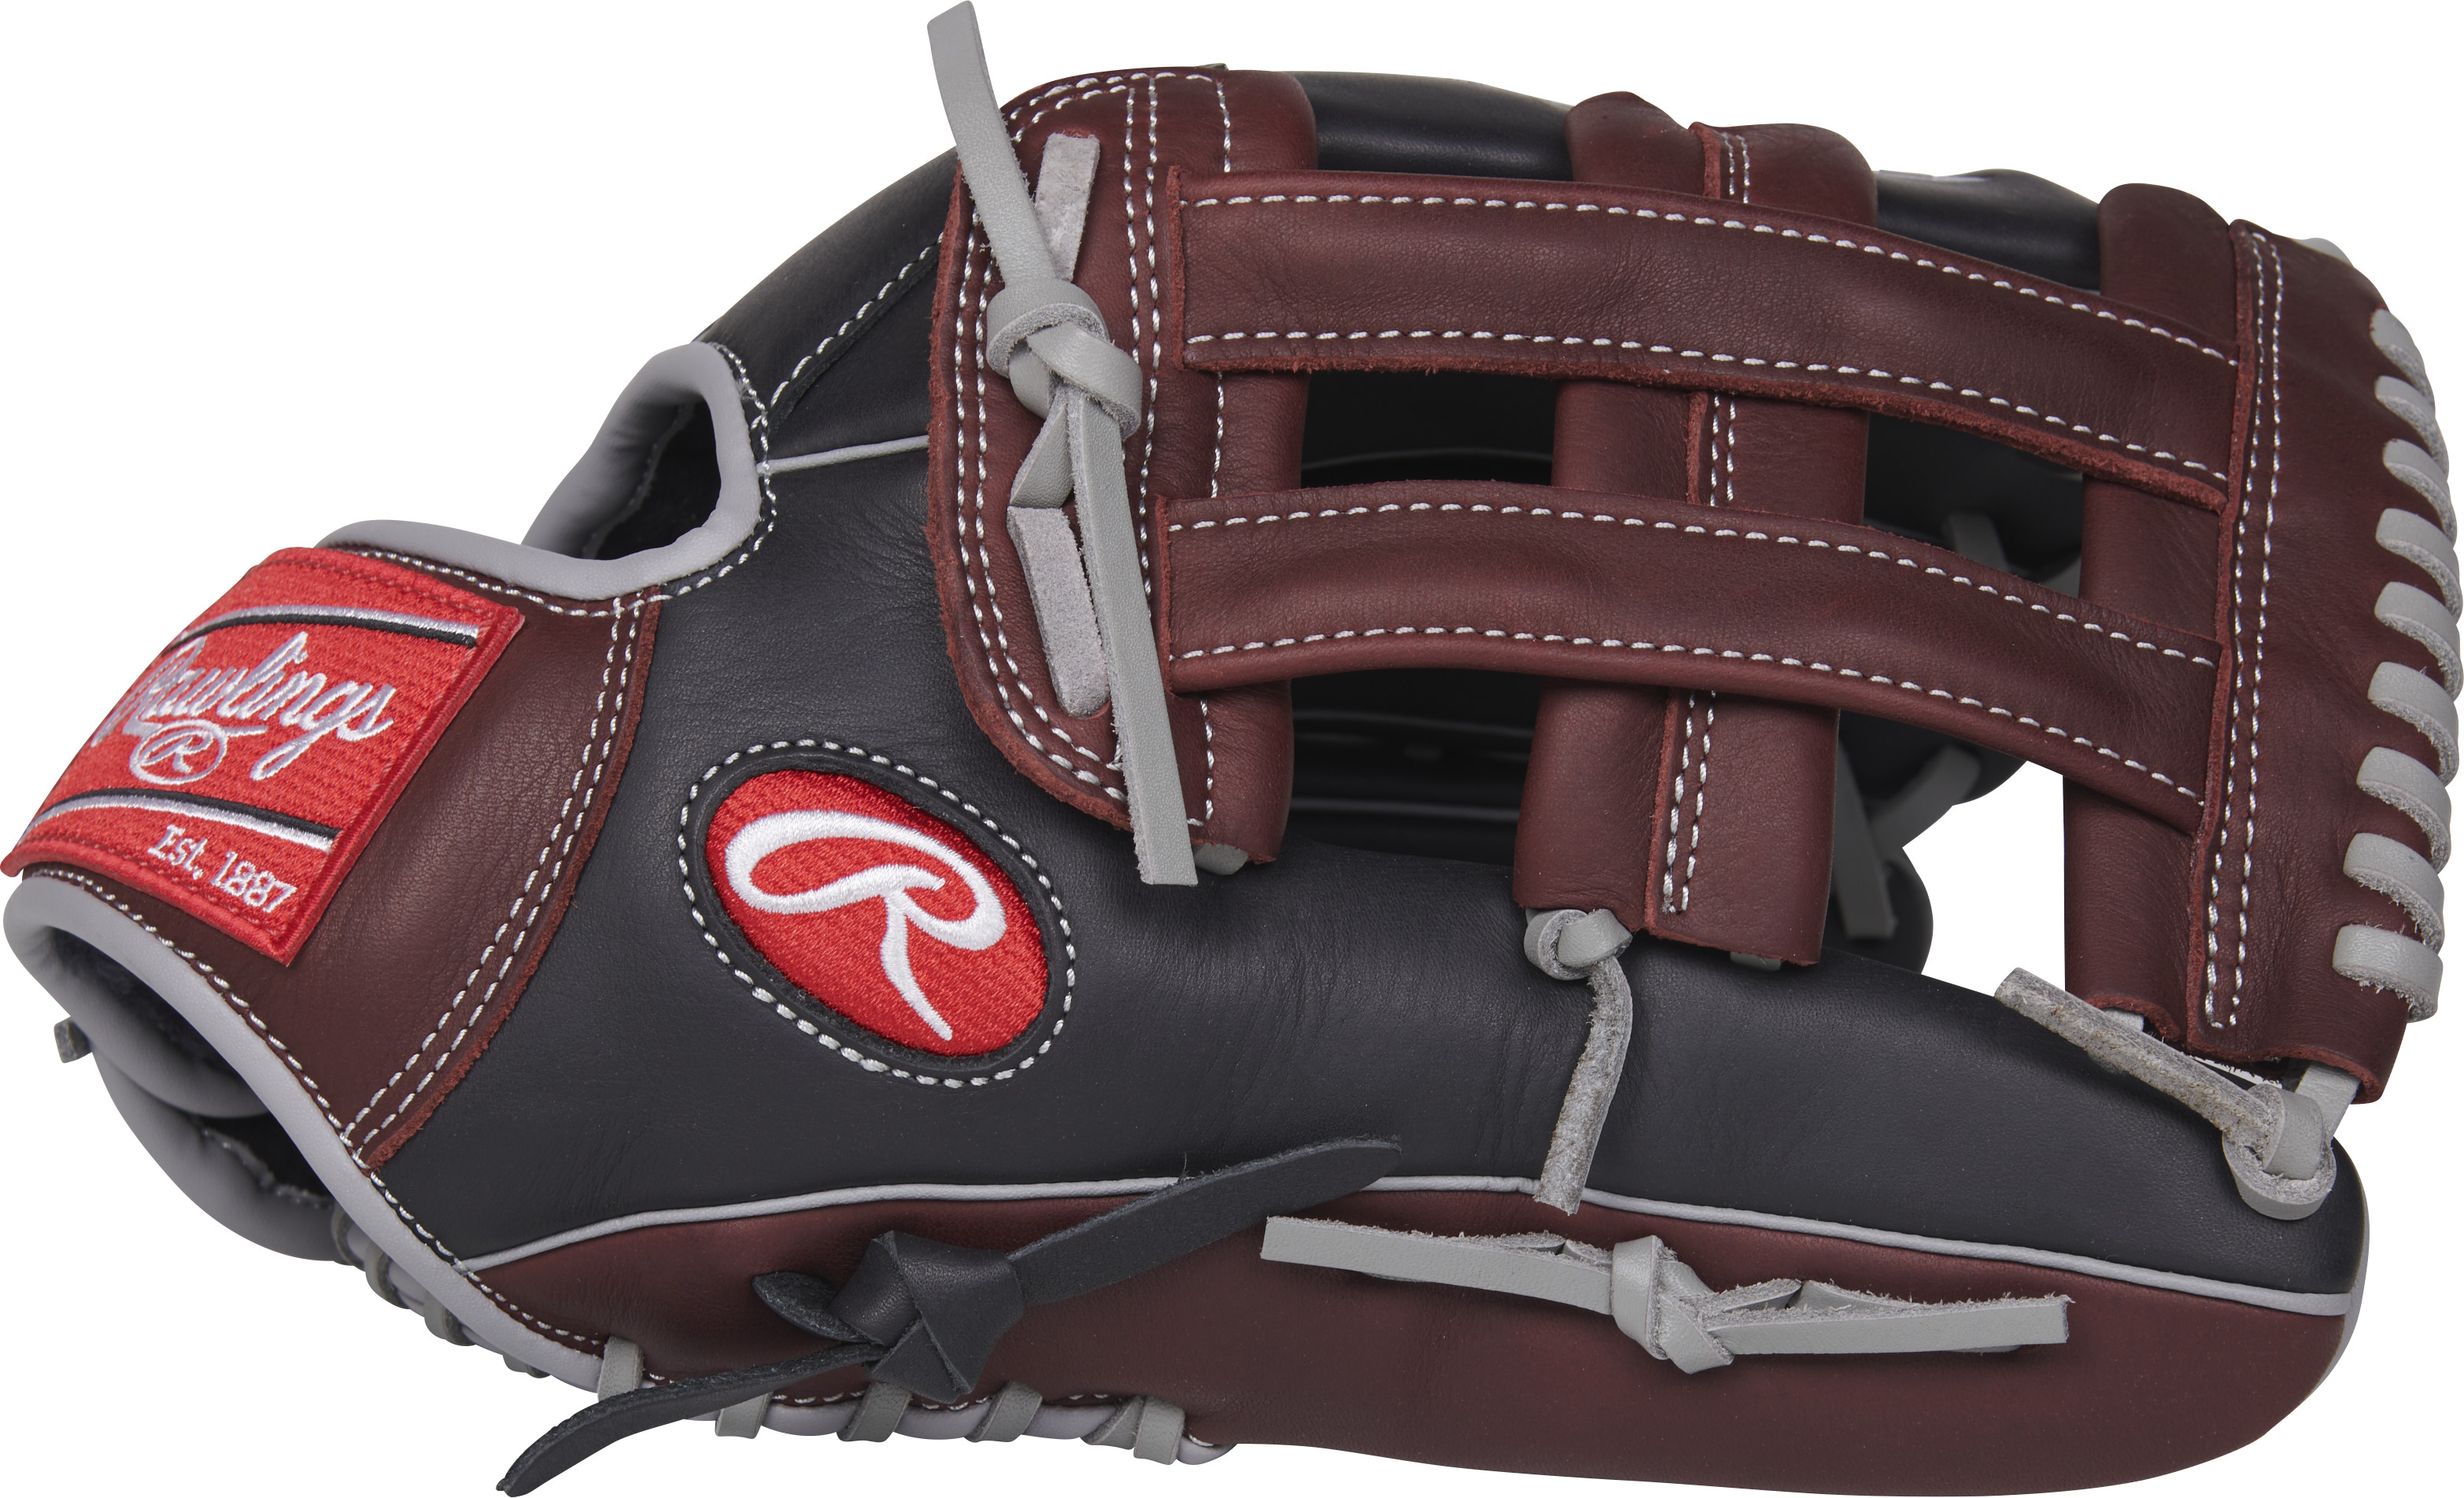 http://www.bestbatdeals.com/images/gloves/rawlings/R93029-6BSG-3.jpg